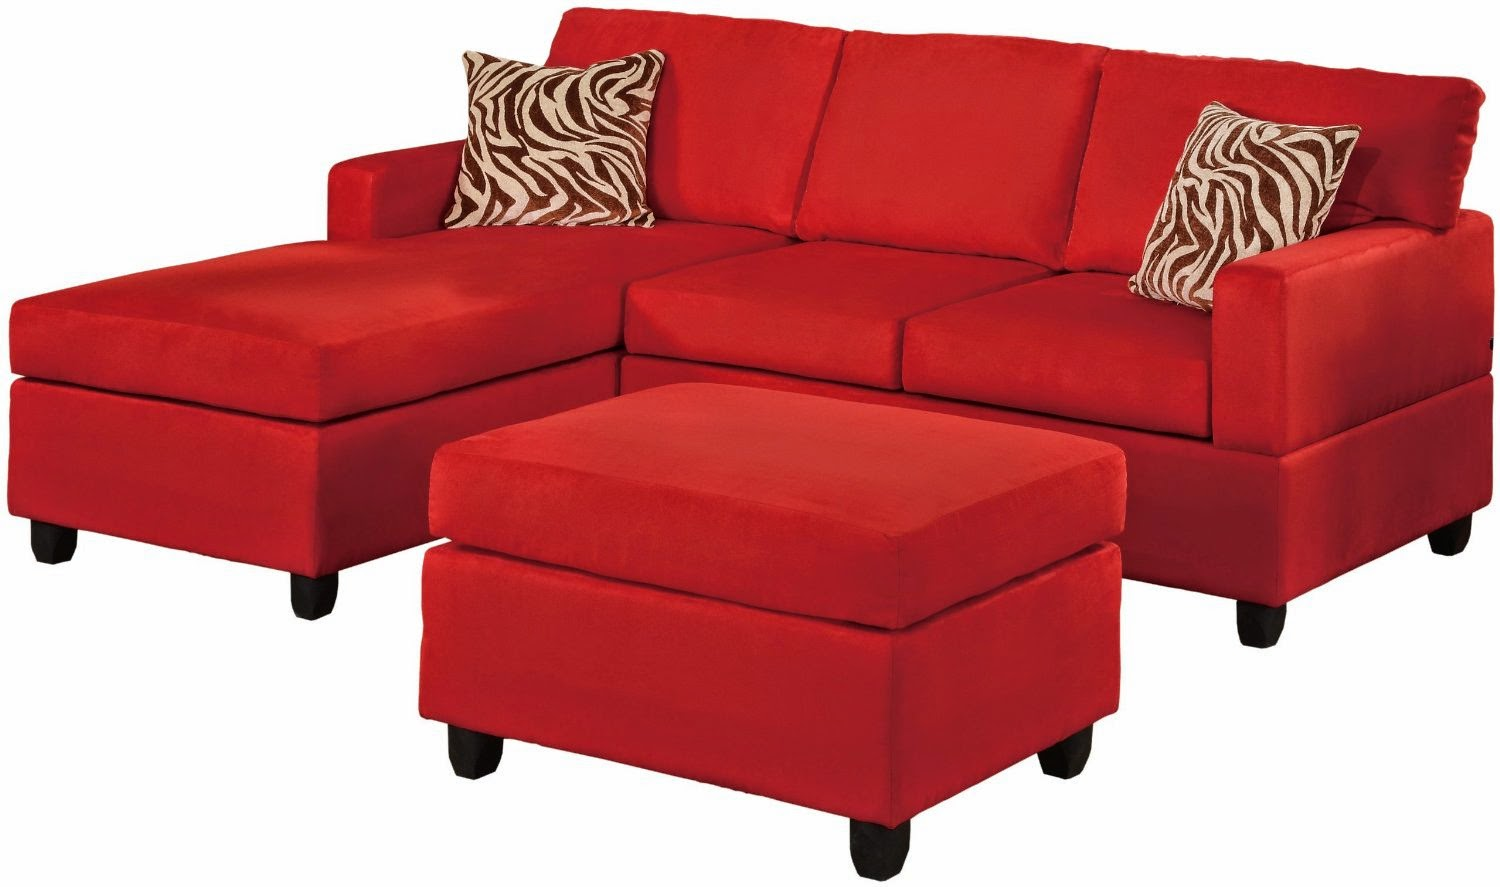 Red couch Red sofas and loveseats